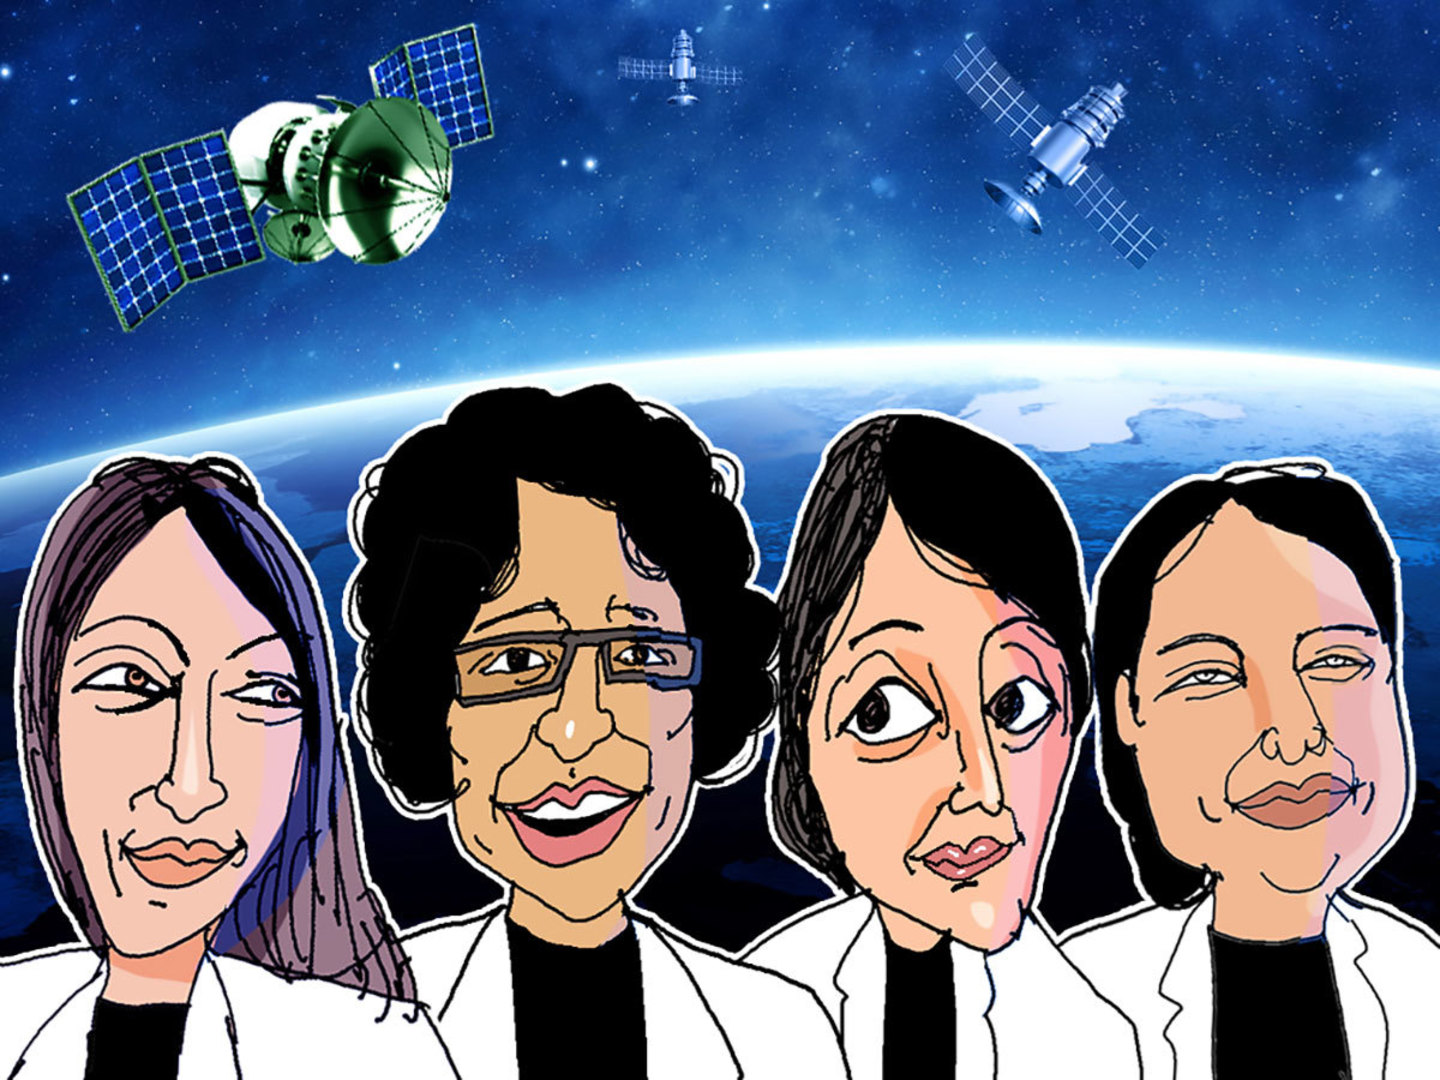 Reaching for the stars: Meet the women leading India's space renaissance